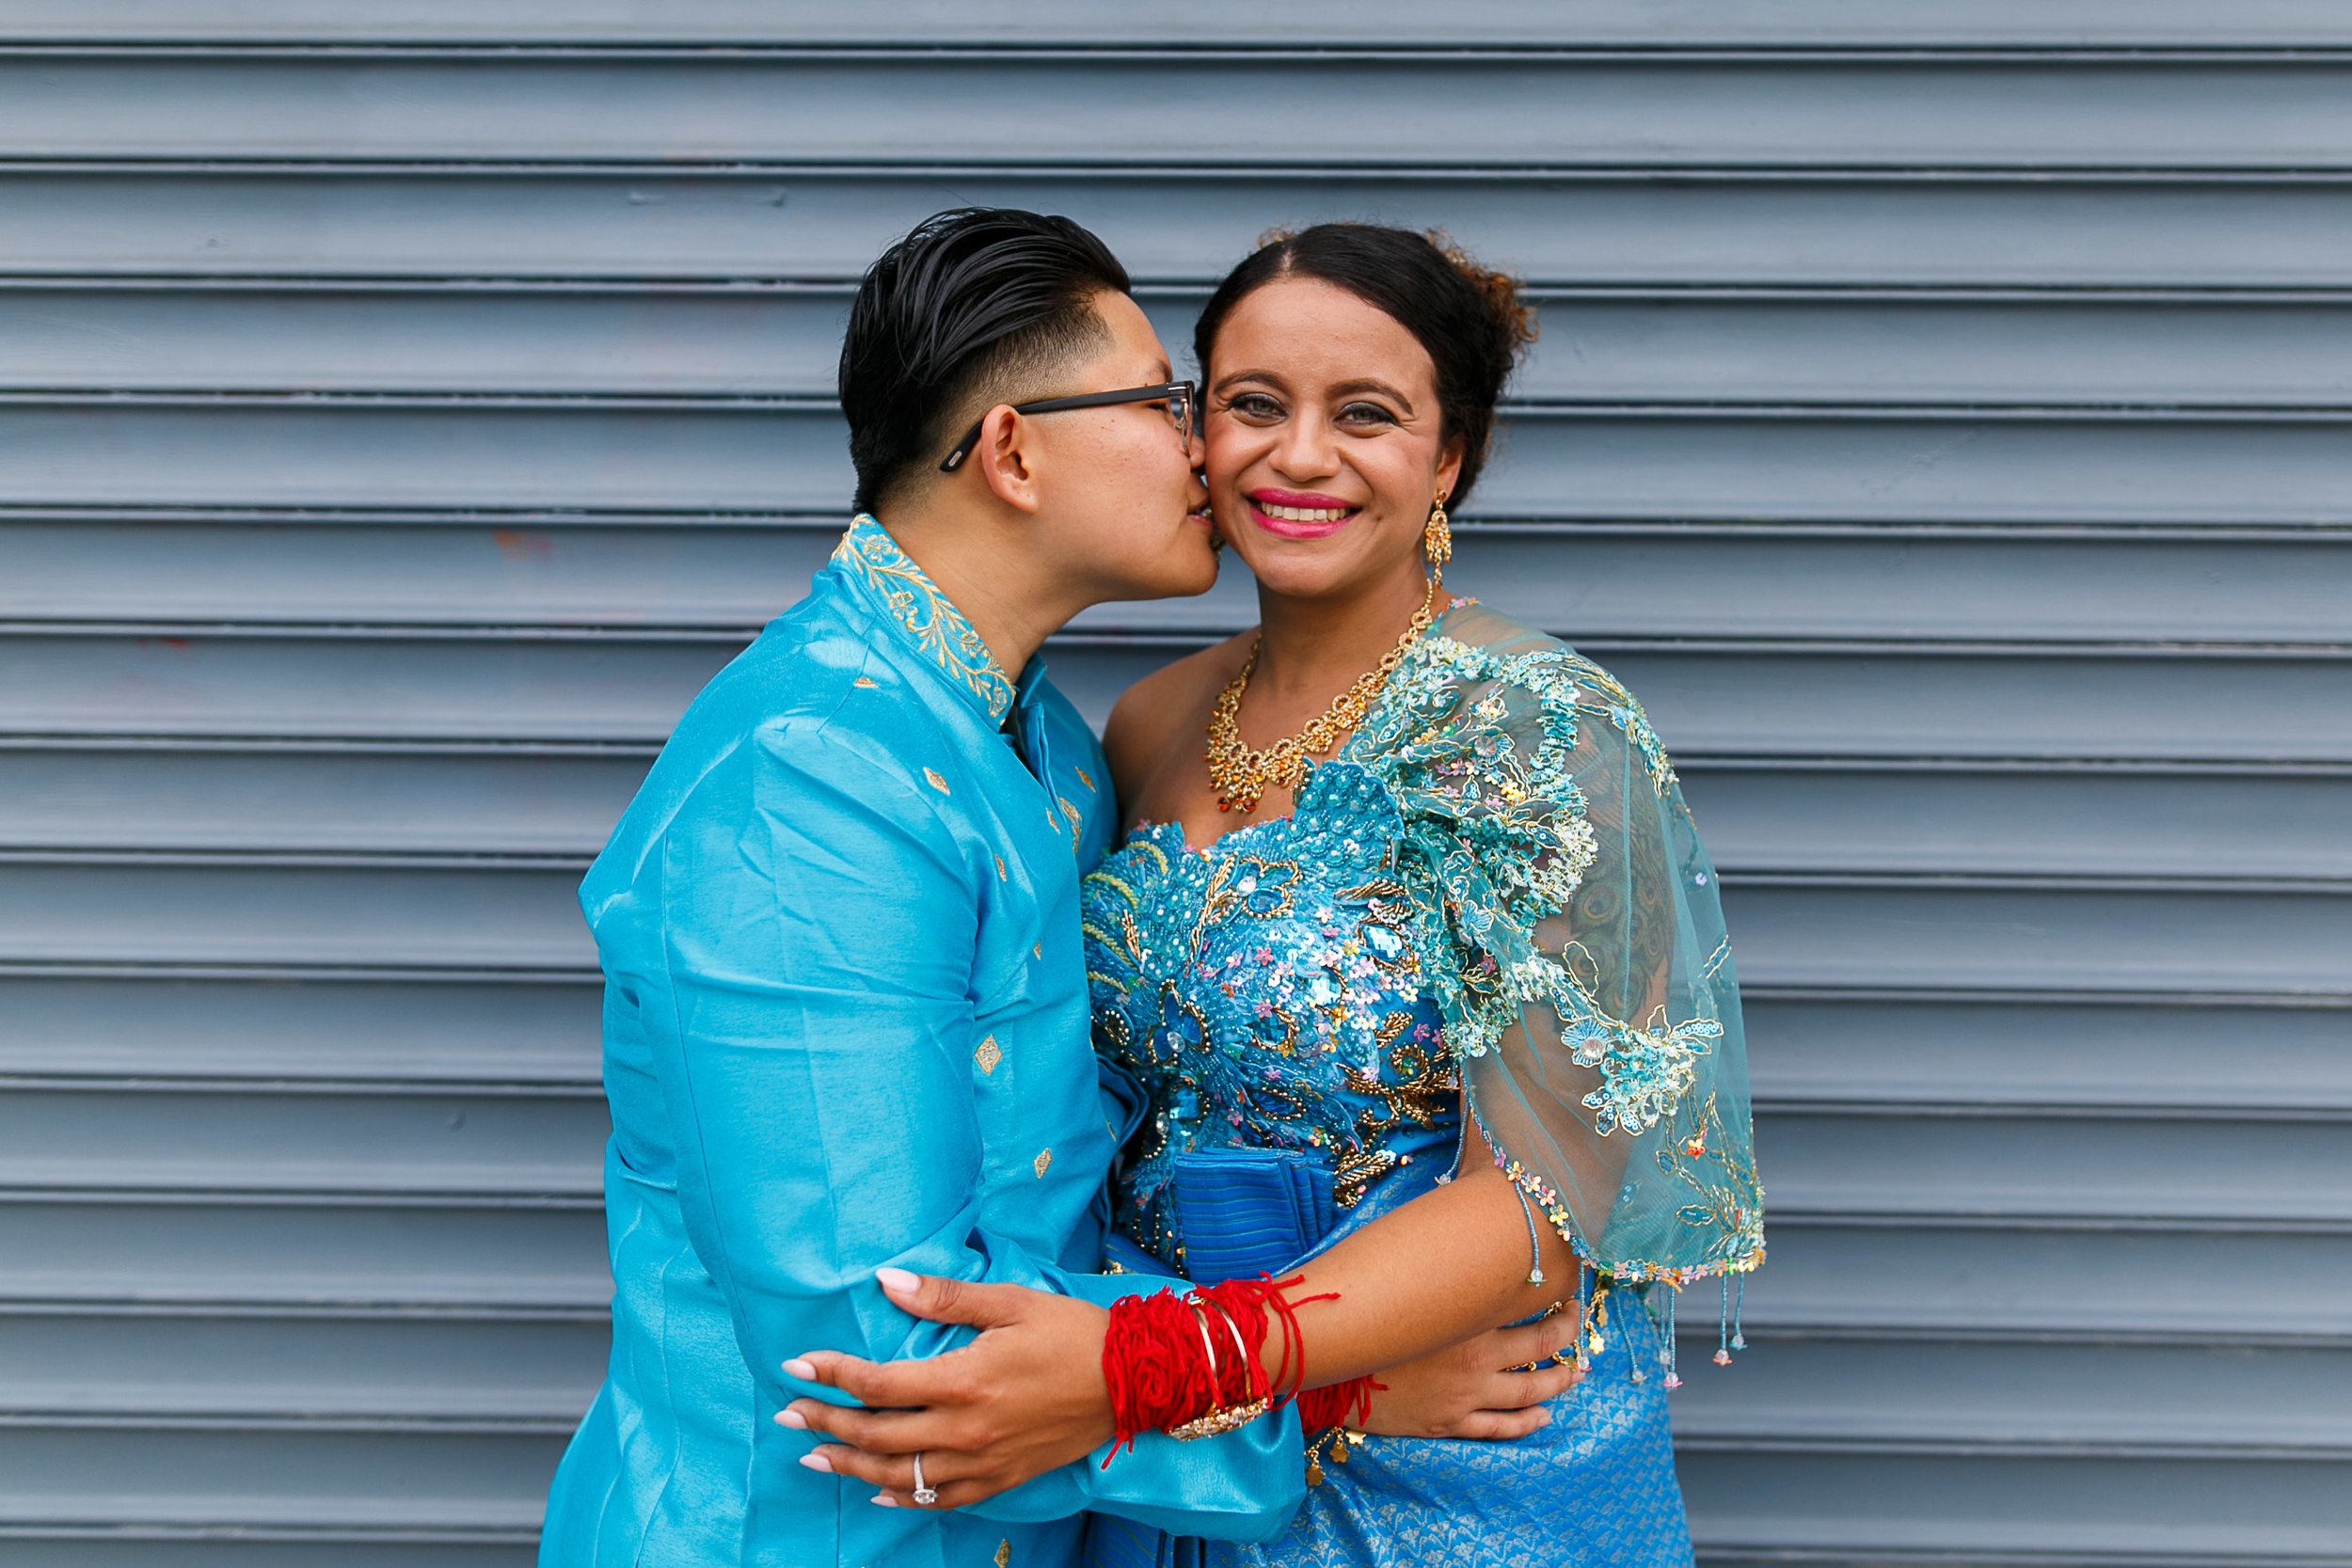 Philadelphia LGBTQ Cambodian Wedding 82.jpg